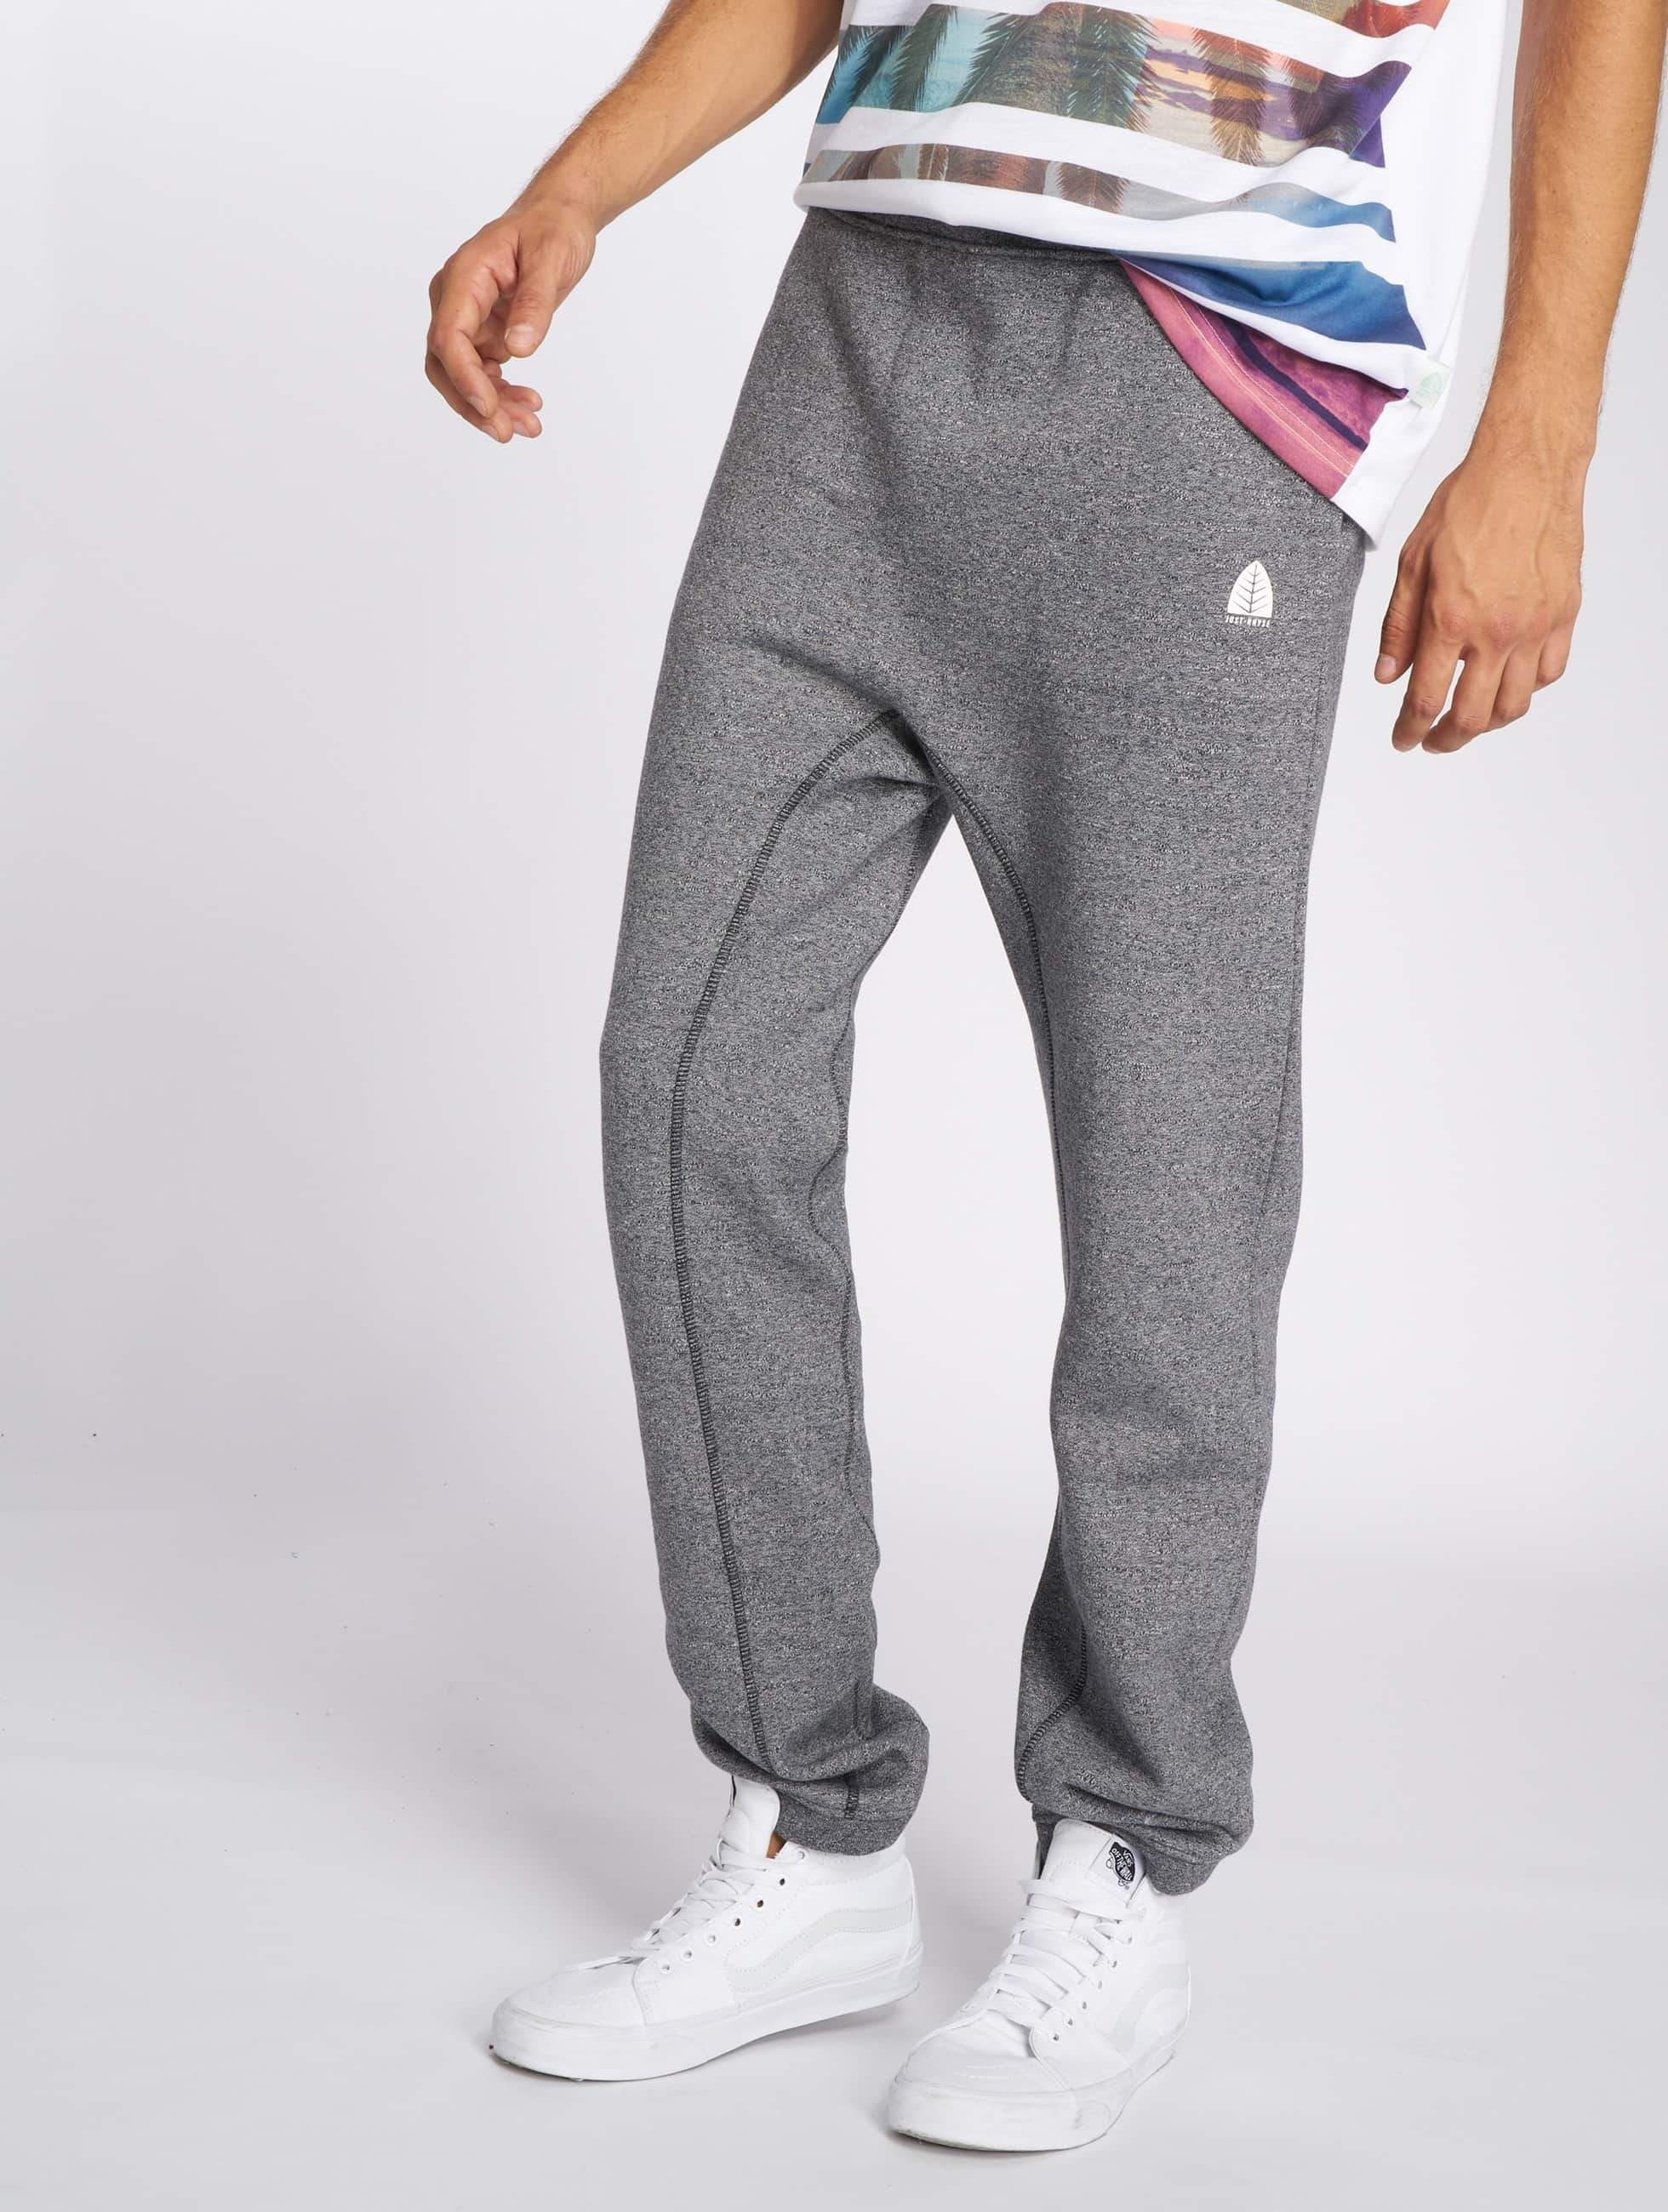 Just Rhyse / Sweat Pant Lima in grey 3XL